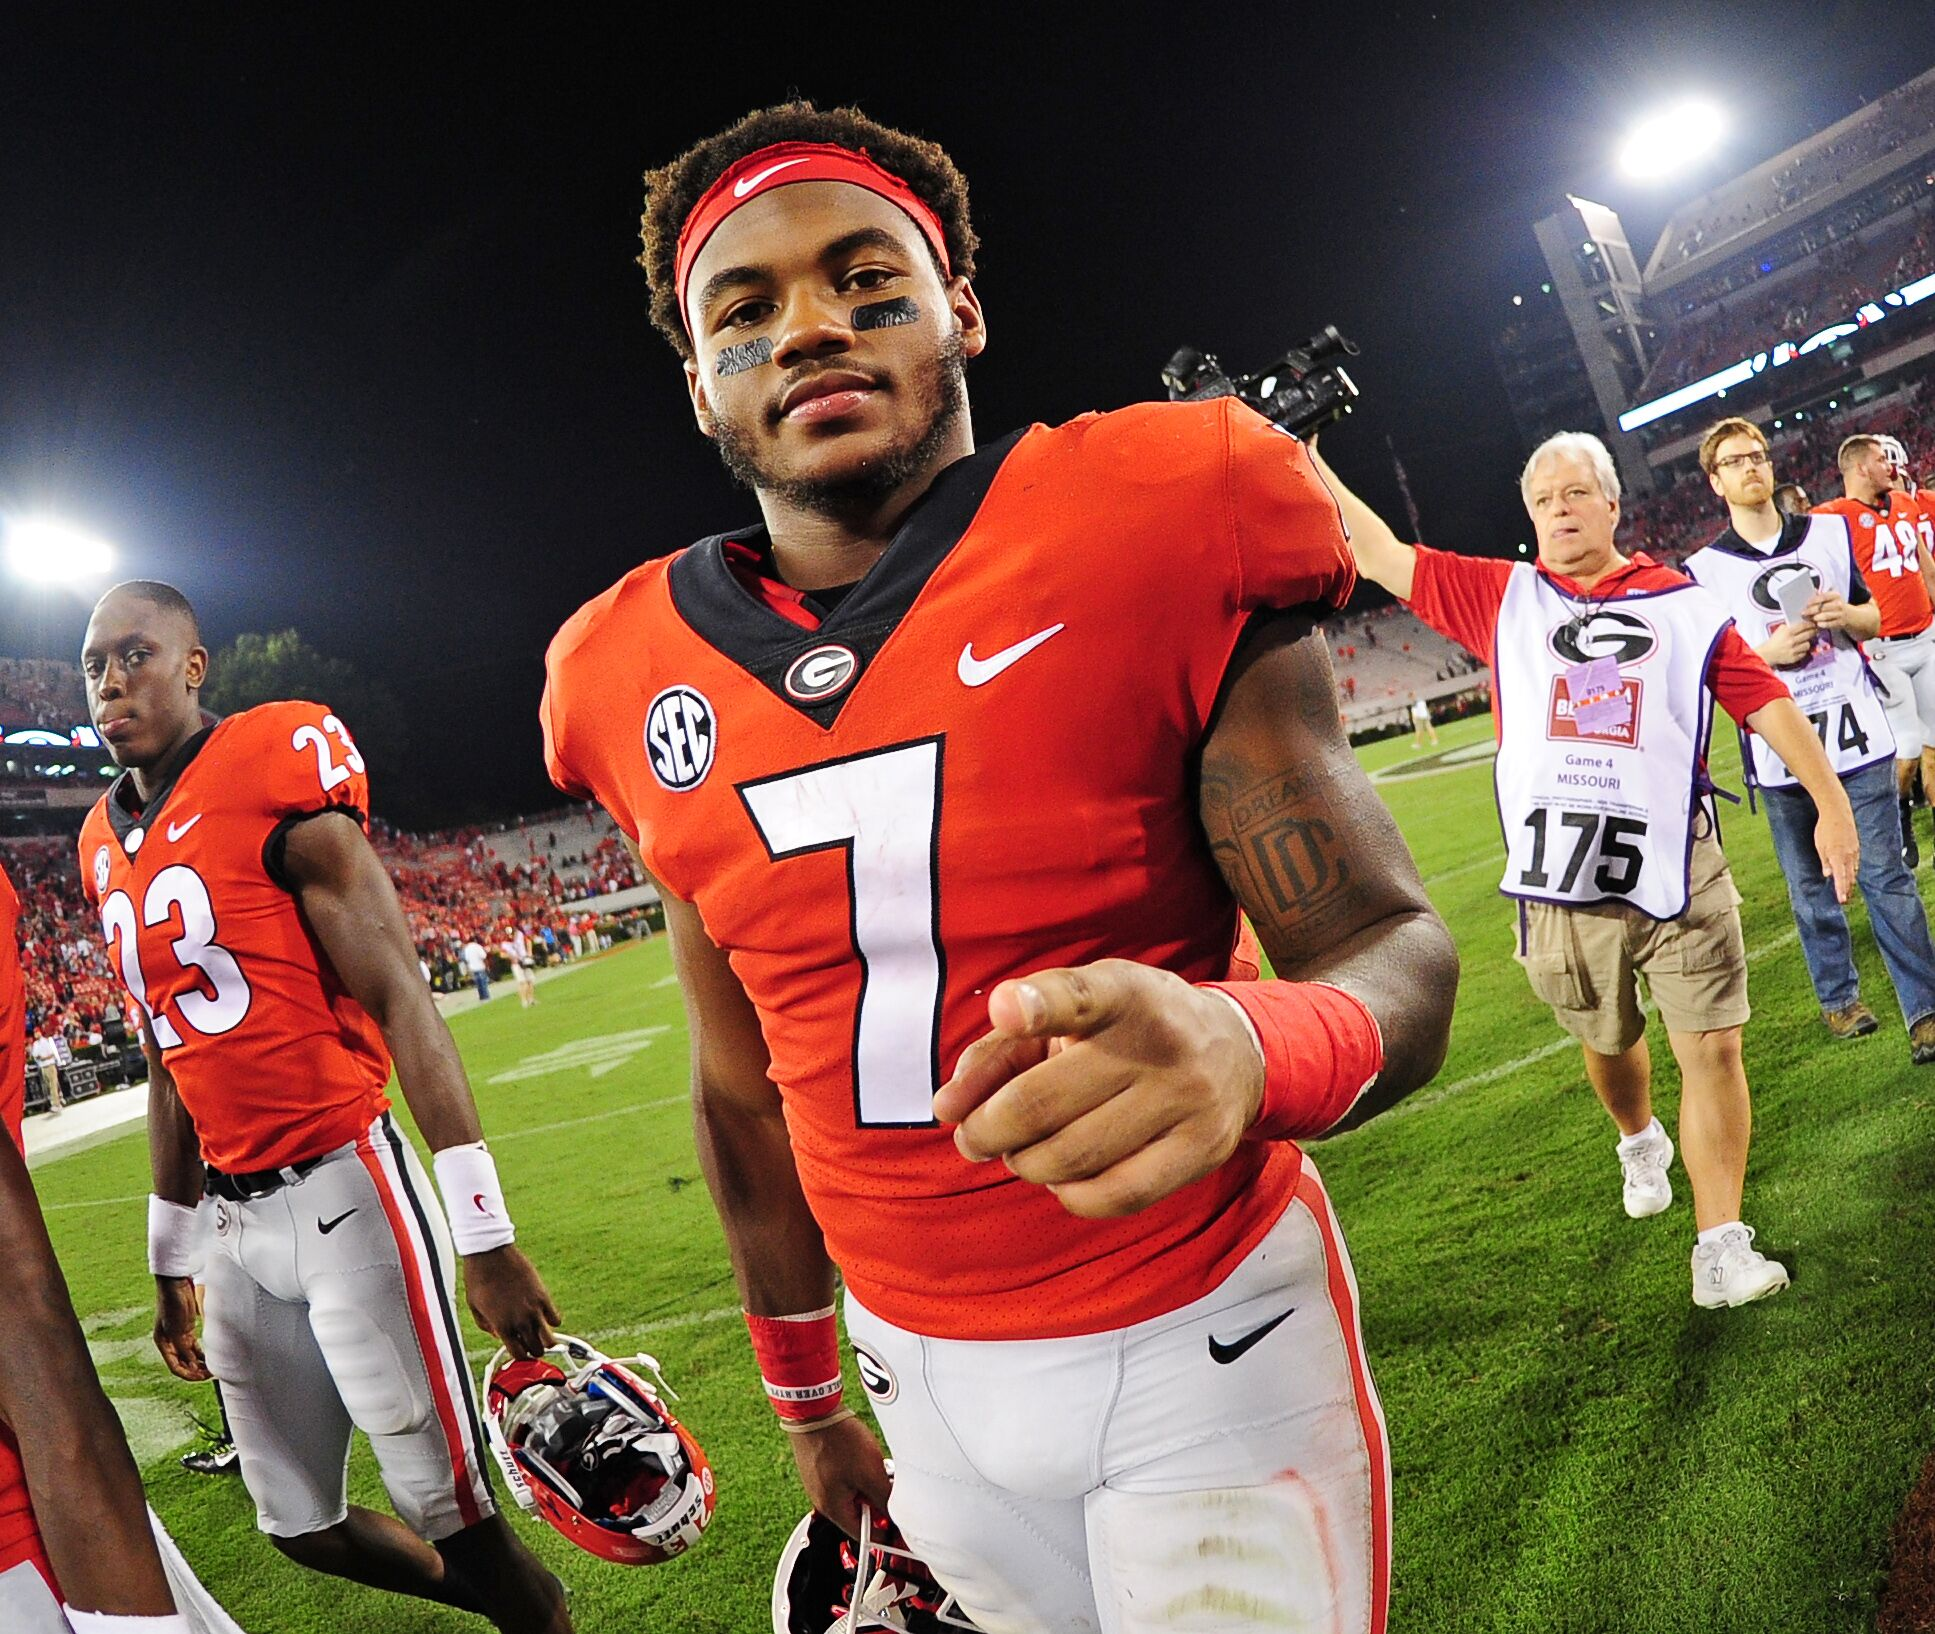 Playoff Rankings 2017 >> College Football Playoff 2017: Projected Top 4 for Week 9 - Page 2